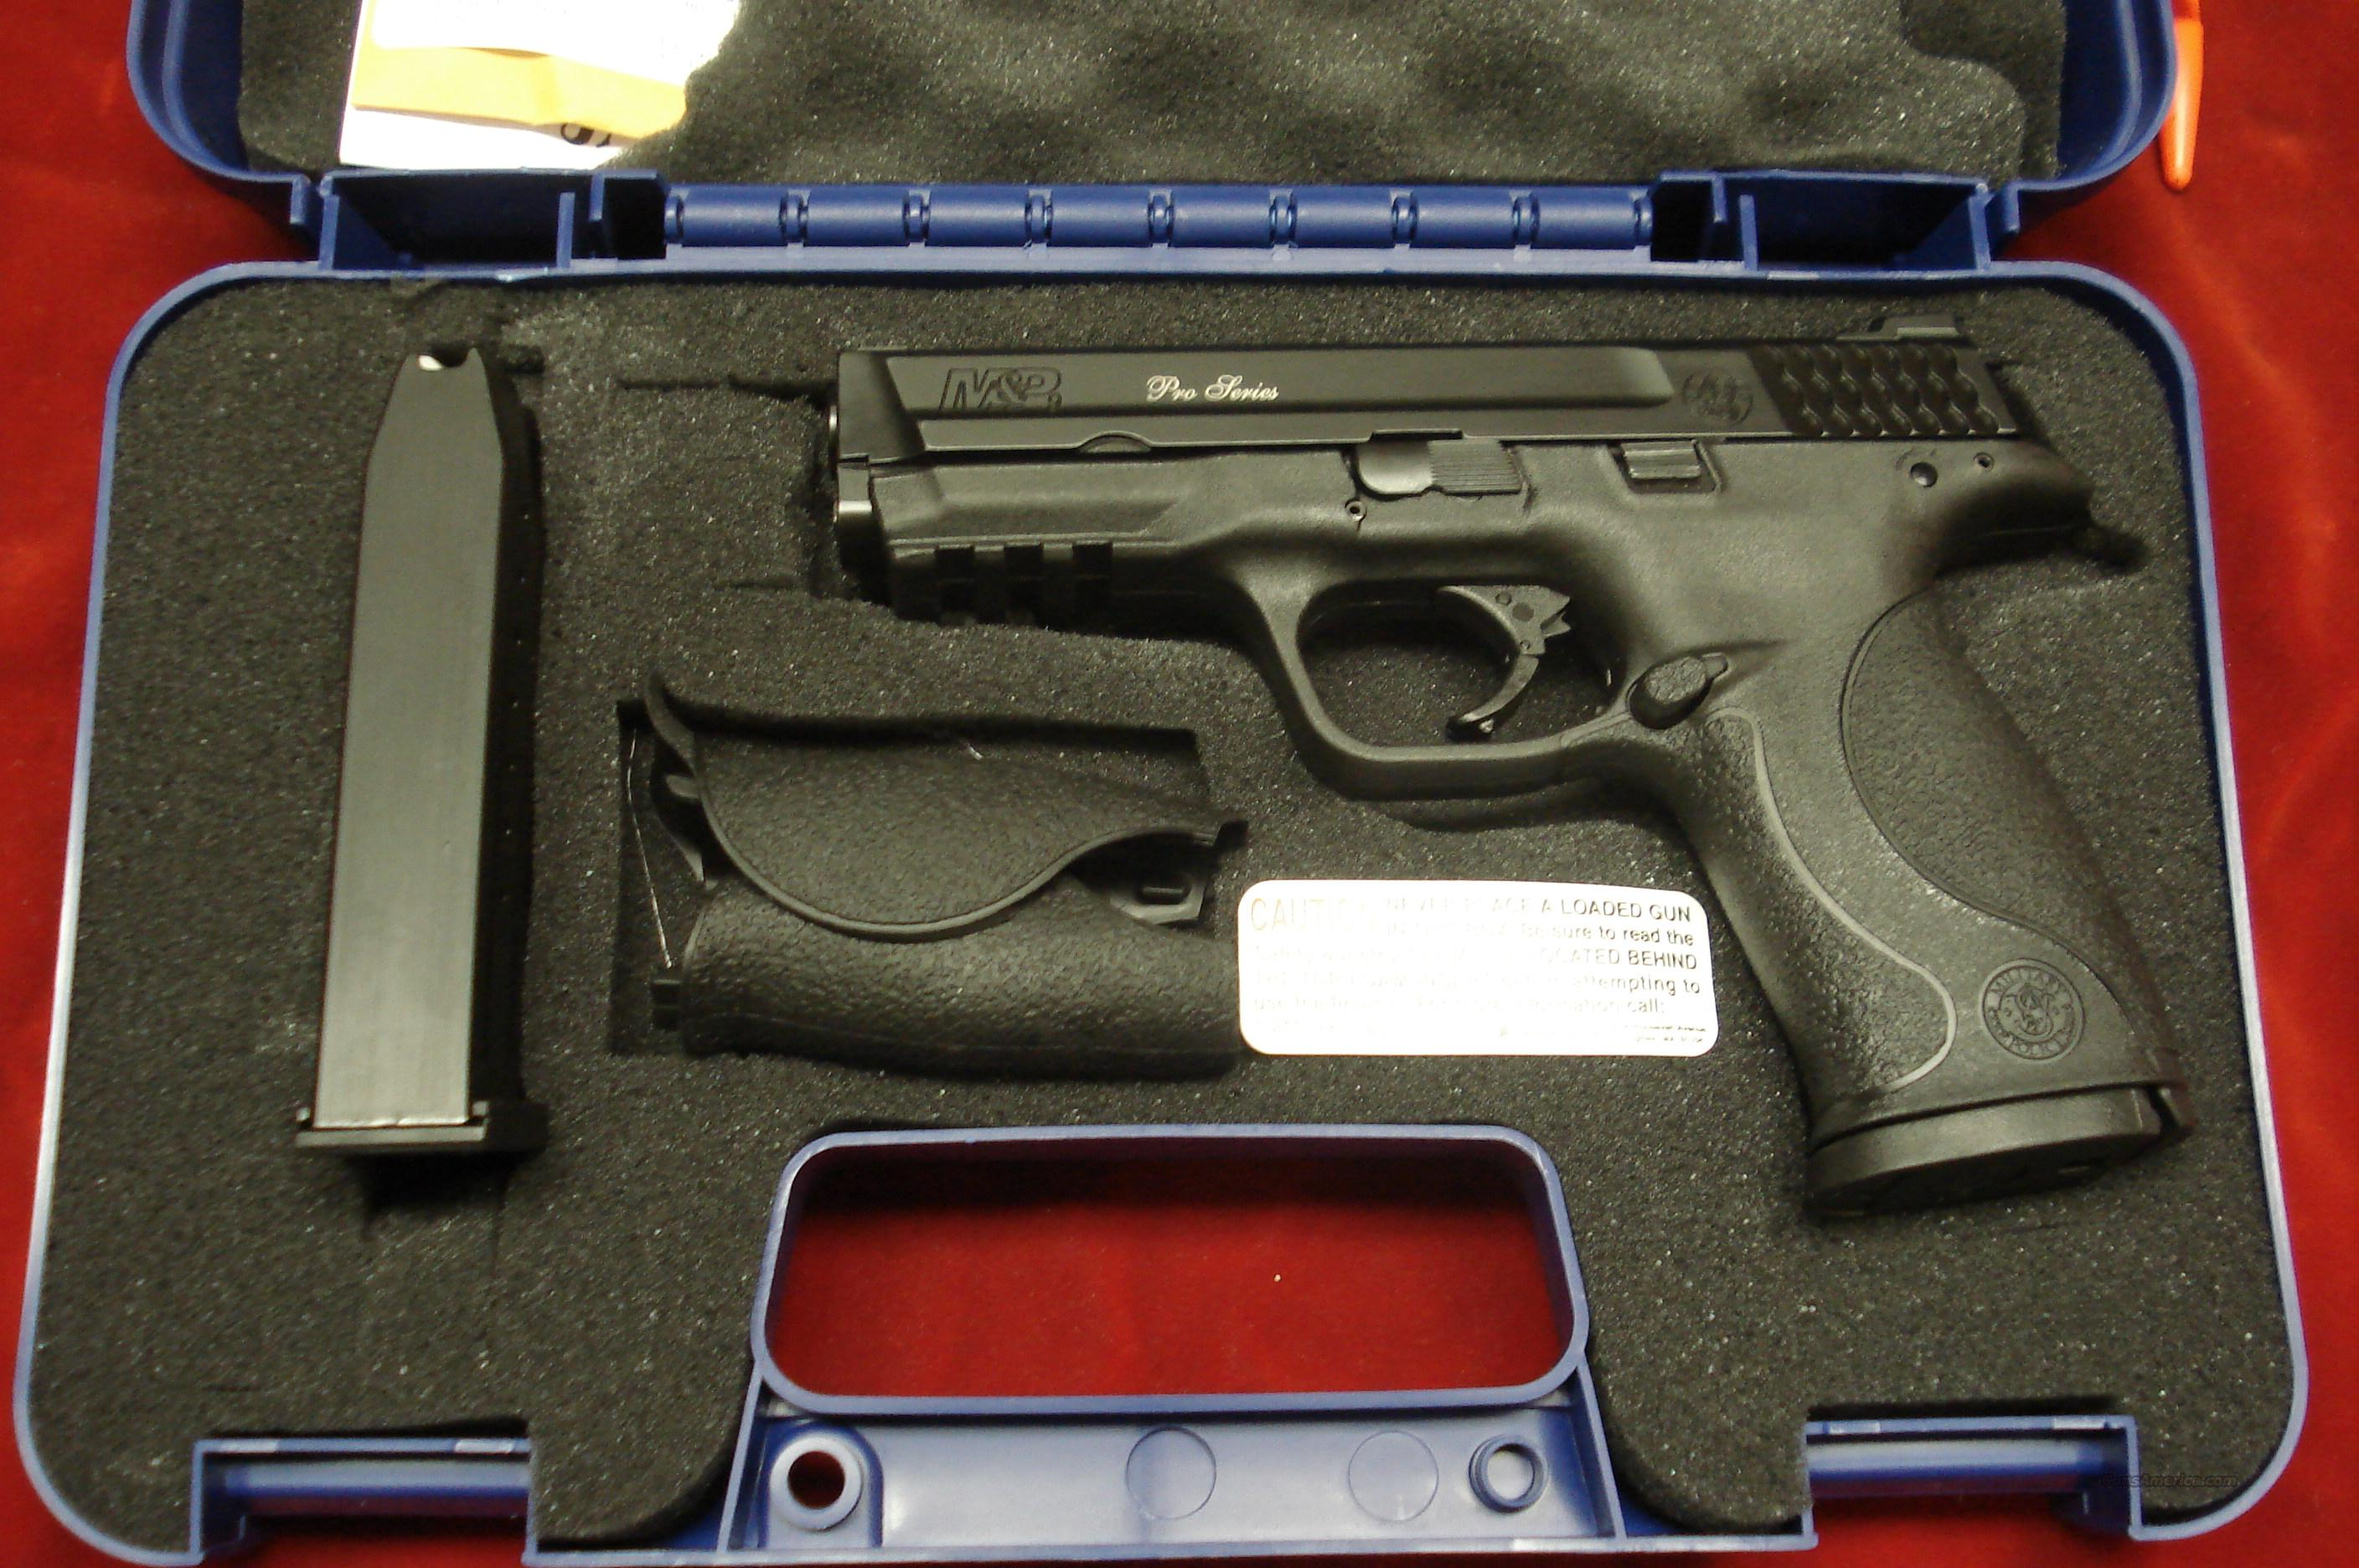 SMITH AND WESSON M&P PRO SERIES 9MM WITH  HIGH CAPACITY MAGS AND NIGHT SIGHTS NEW   Guns > Pistols > Smith & Wesson Pistols - Autos > Polymer Frame